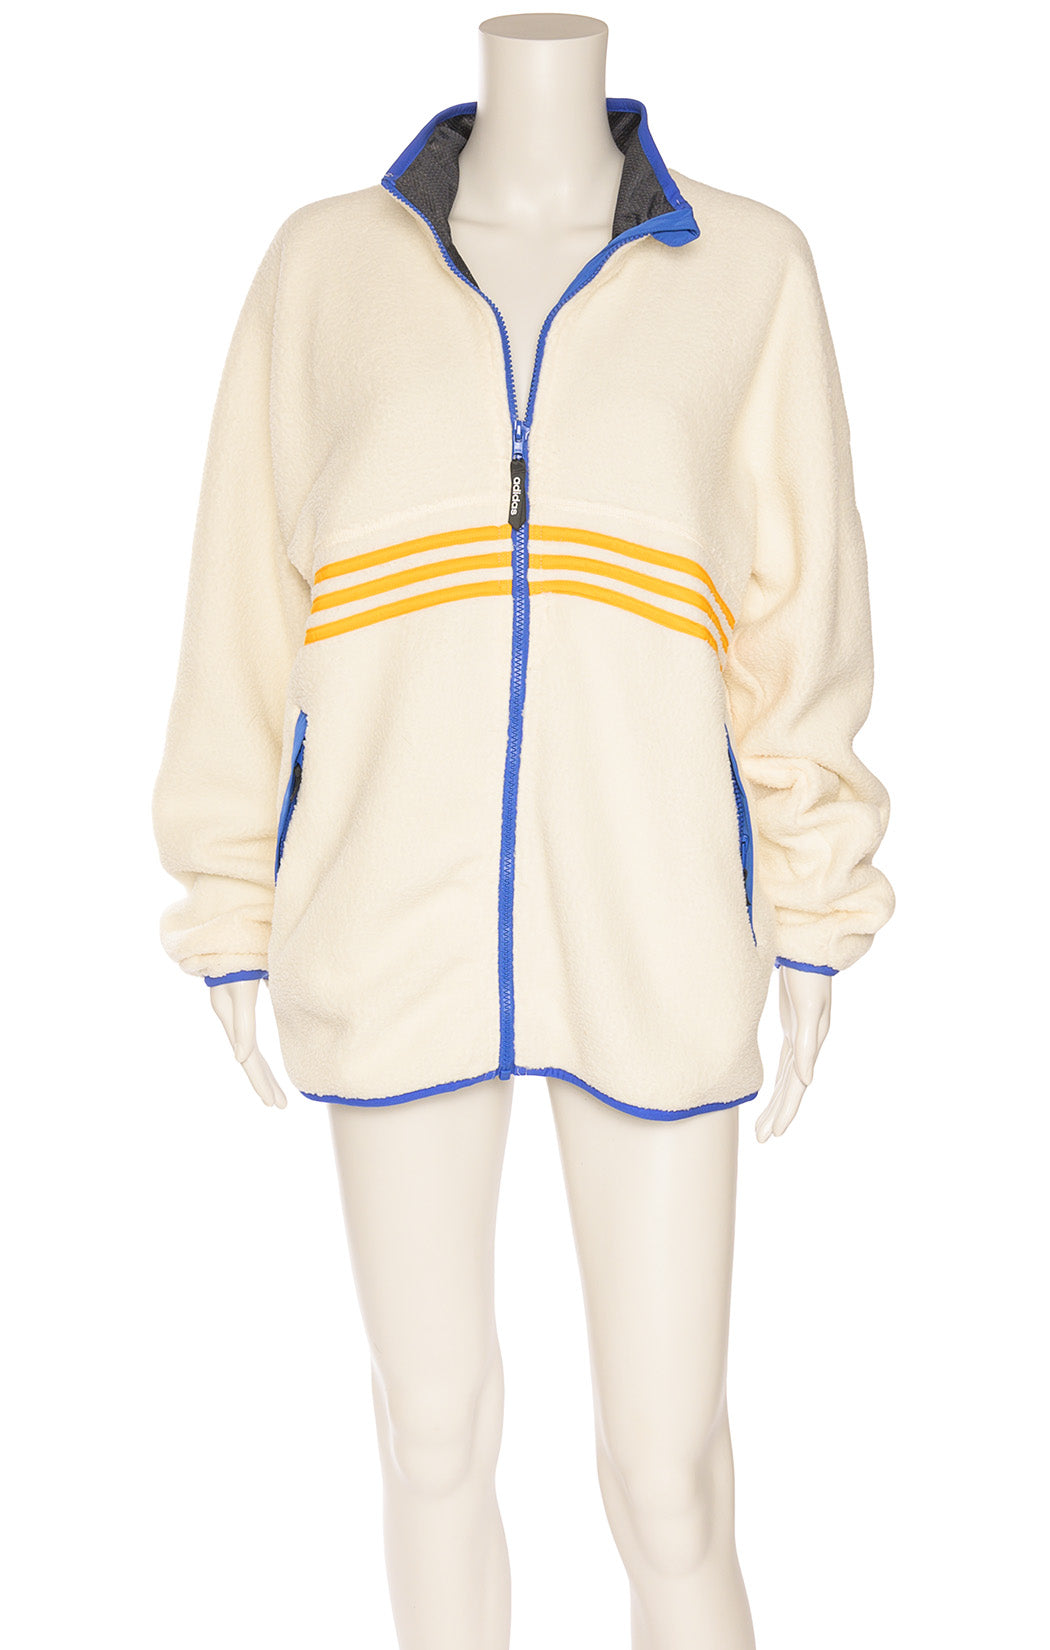 Ivory colored with yellow and blue stripes polar jacket with zipper front closure and front zippered pockets